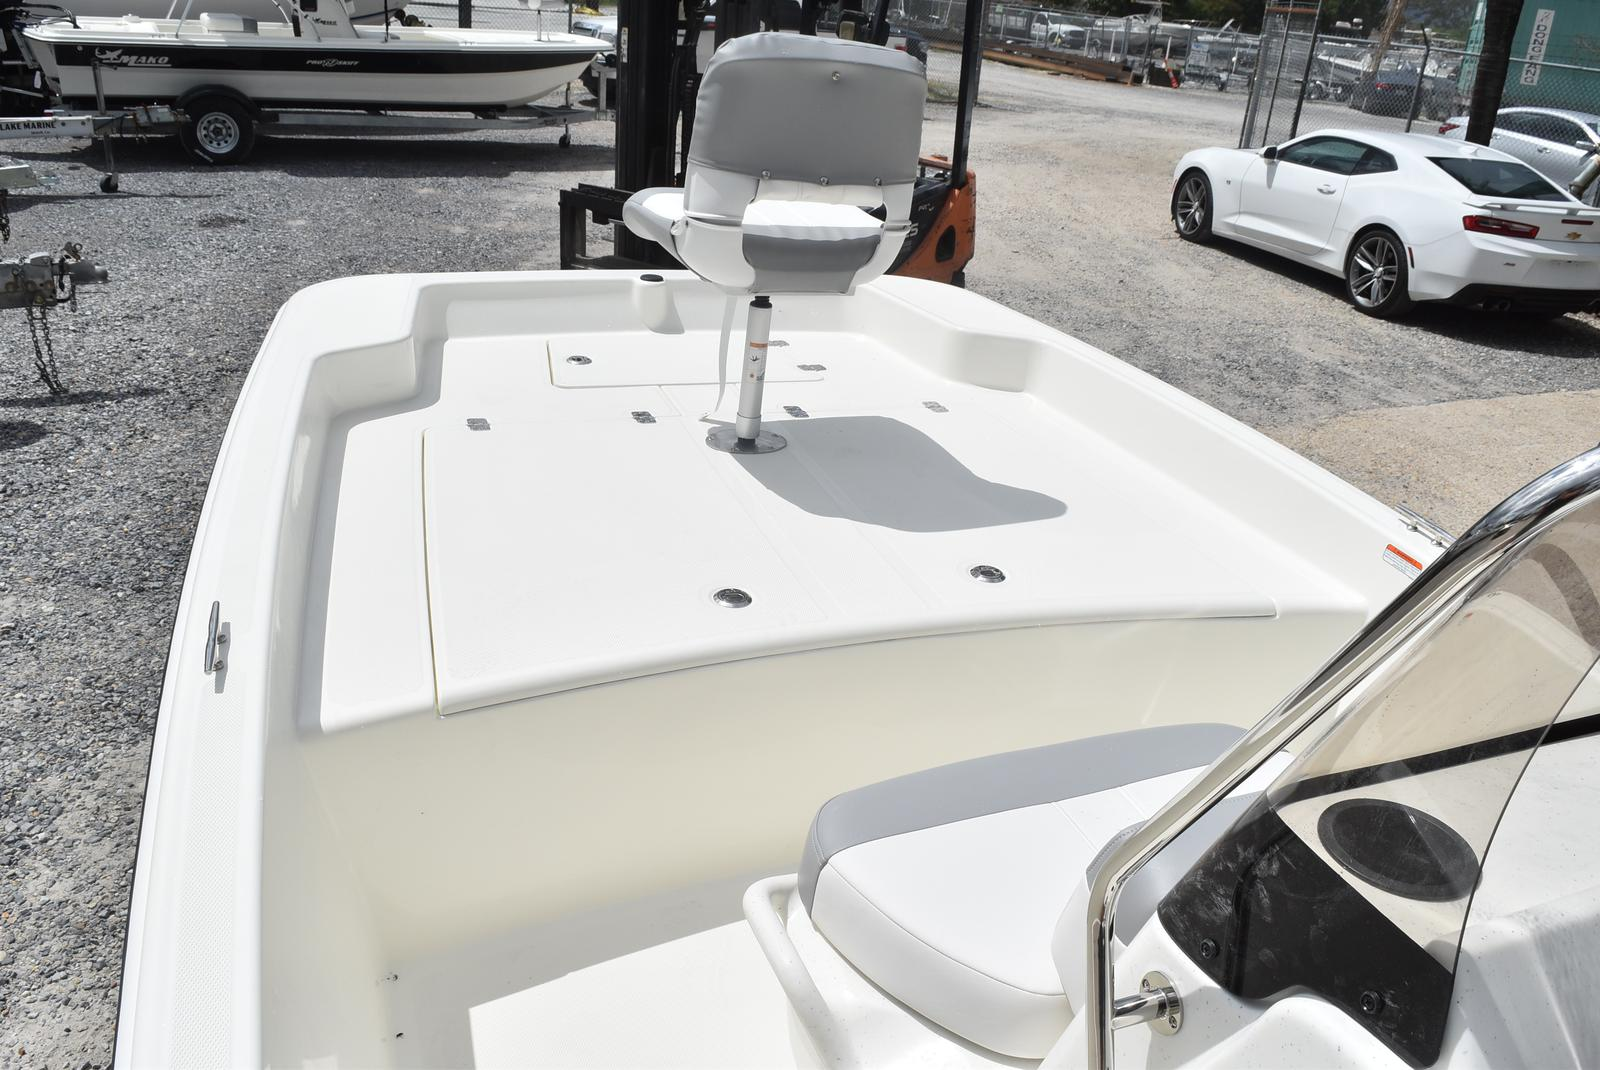 2020 Mako boat for sale, model of the boat is Pro Skiff 17, 75 ELPT & Image # 392 of 702